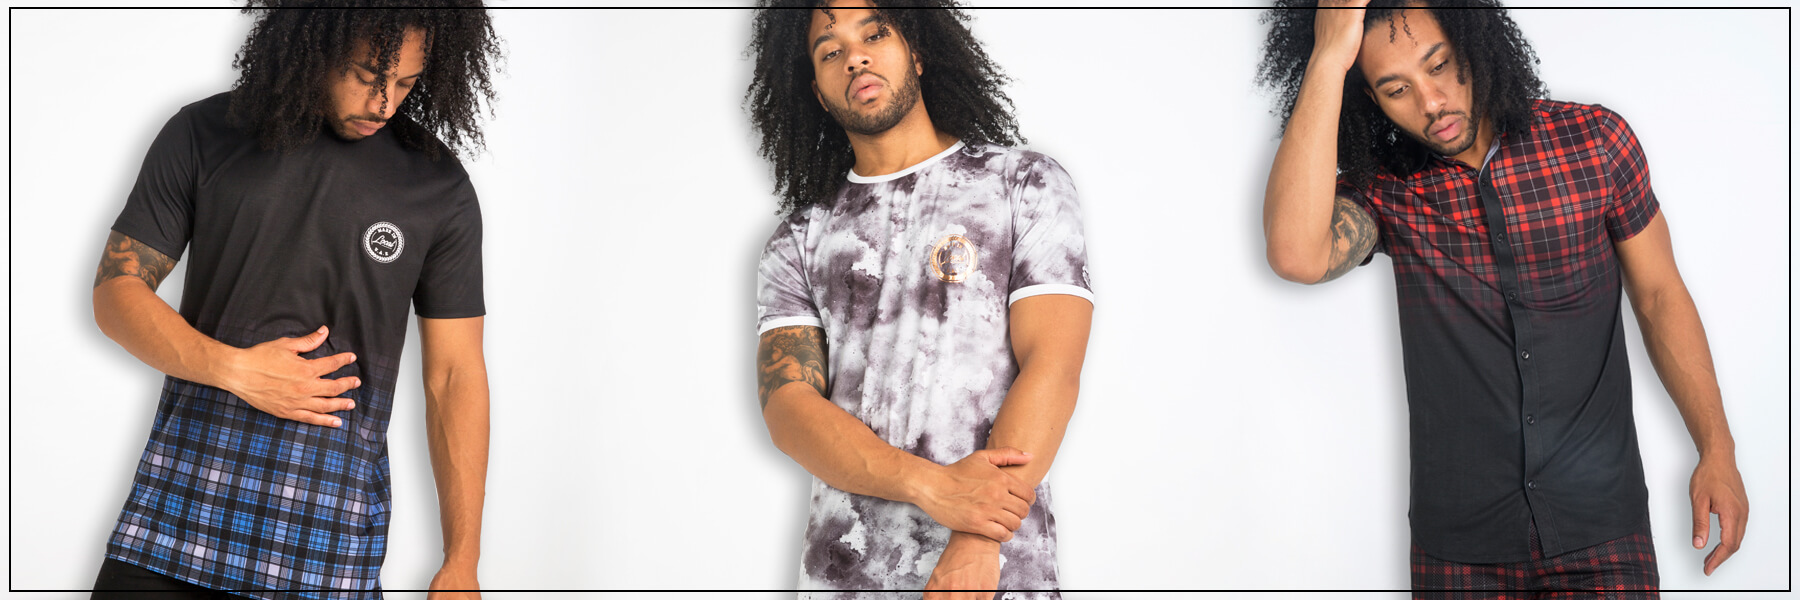 wholesale-men-tshirts-clothing-and-garments-supplier-in-dubai-uae-and-middle-east